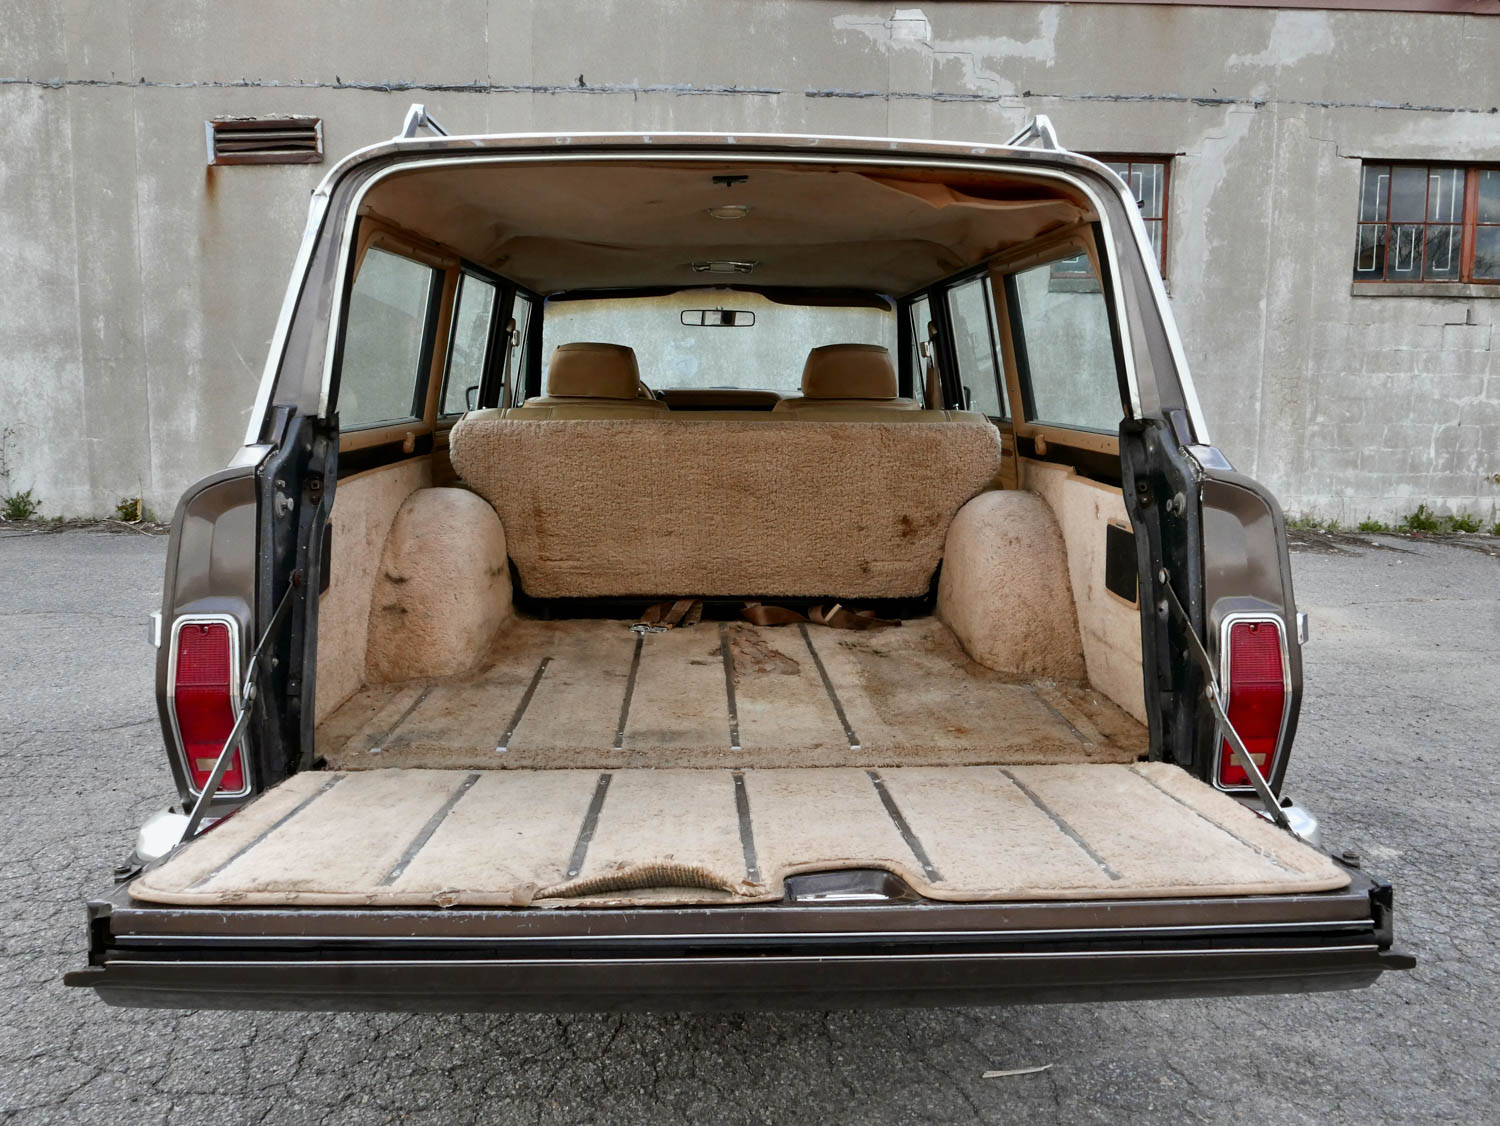 1987 Jeep Grand Wagoneer hatch down